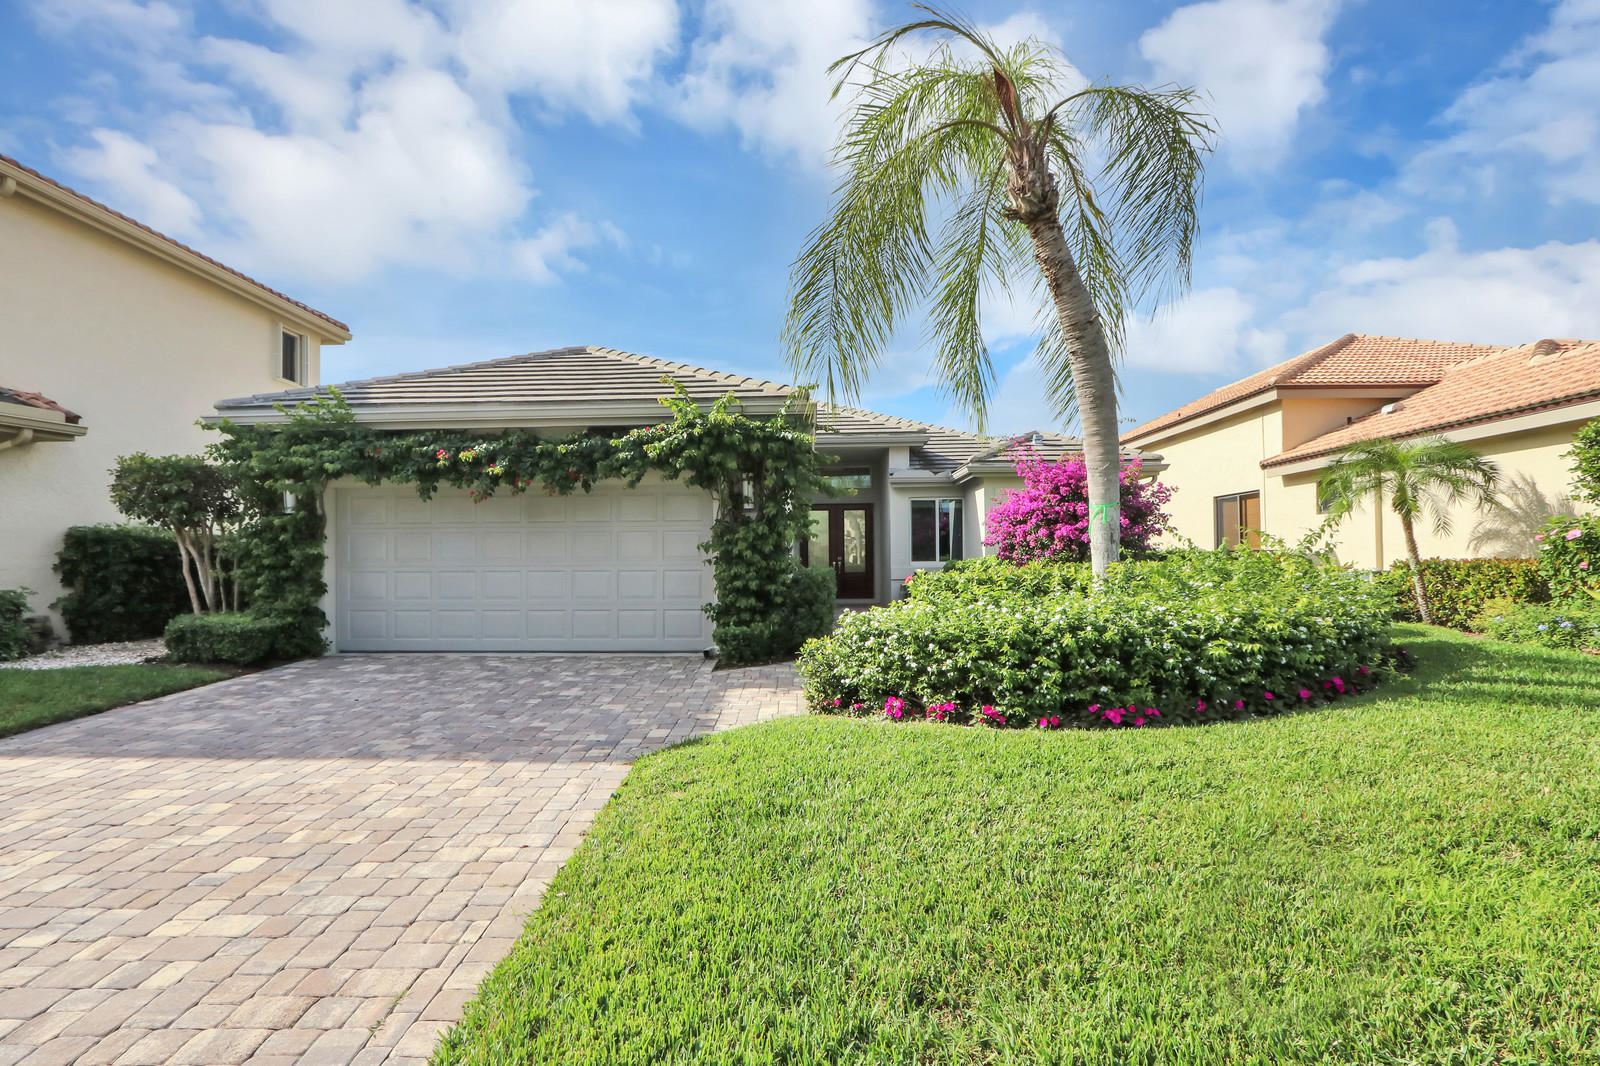 Photo of 13821 Le Havre Drive, Palm Beach Gardens, FL 33410 (MLS # RX-10588592)